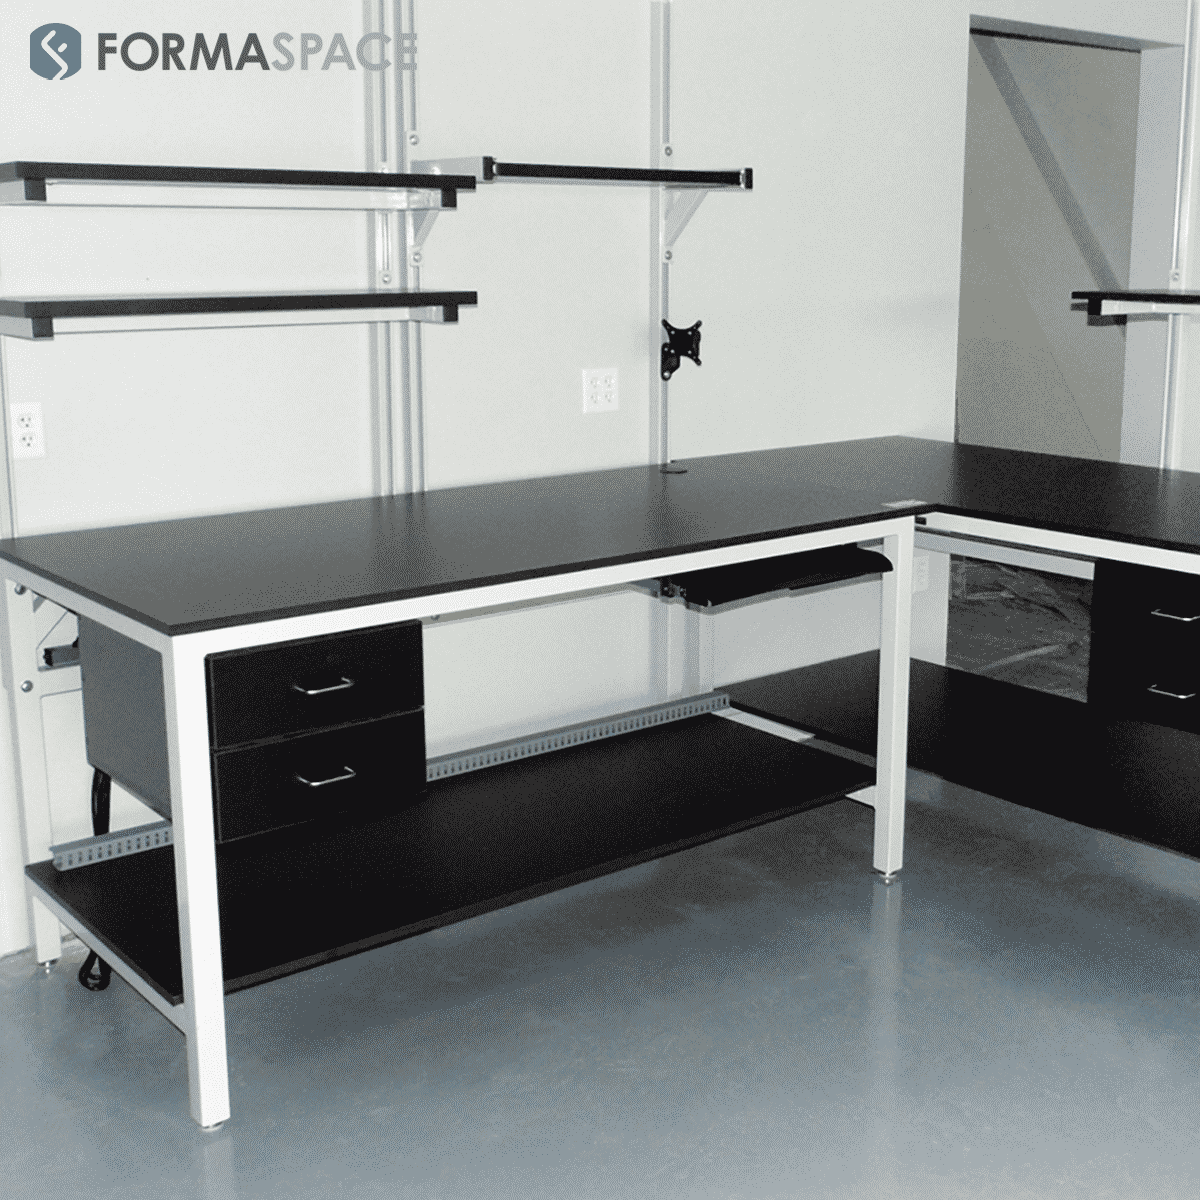 modular laboratory installation with benchmark